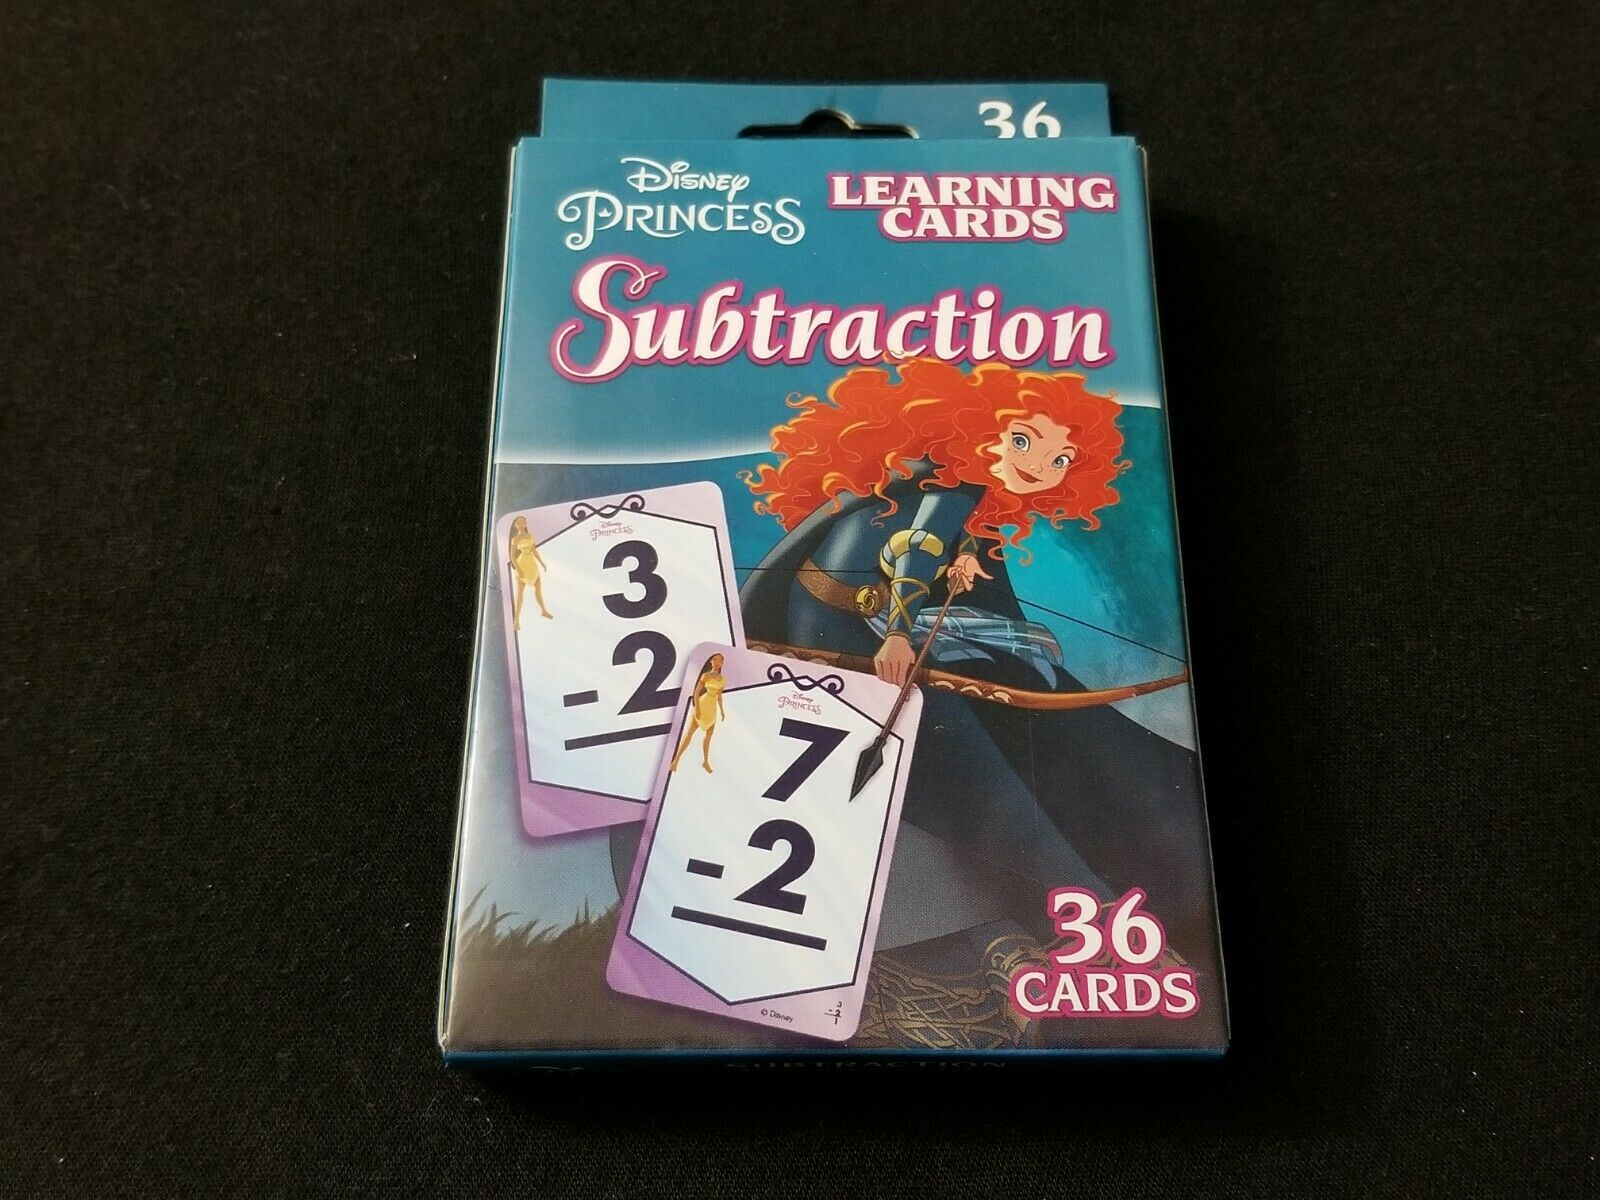 Disney Princess Addition and Subtraction Learning Flash Card Set